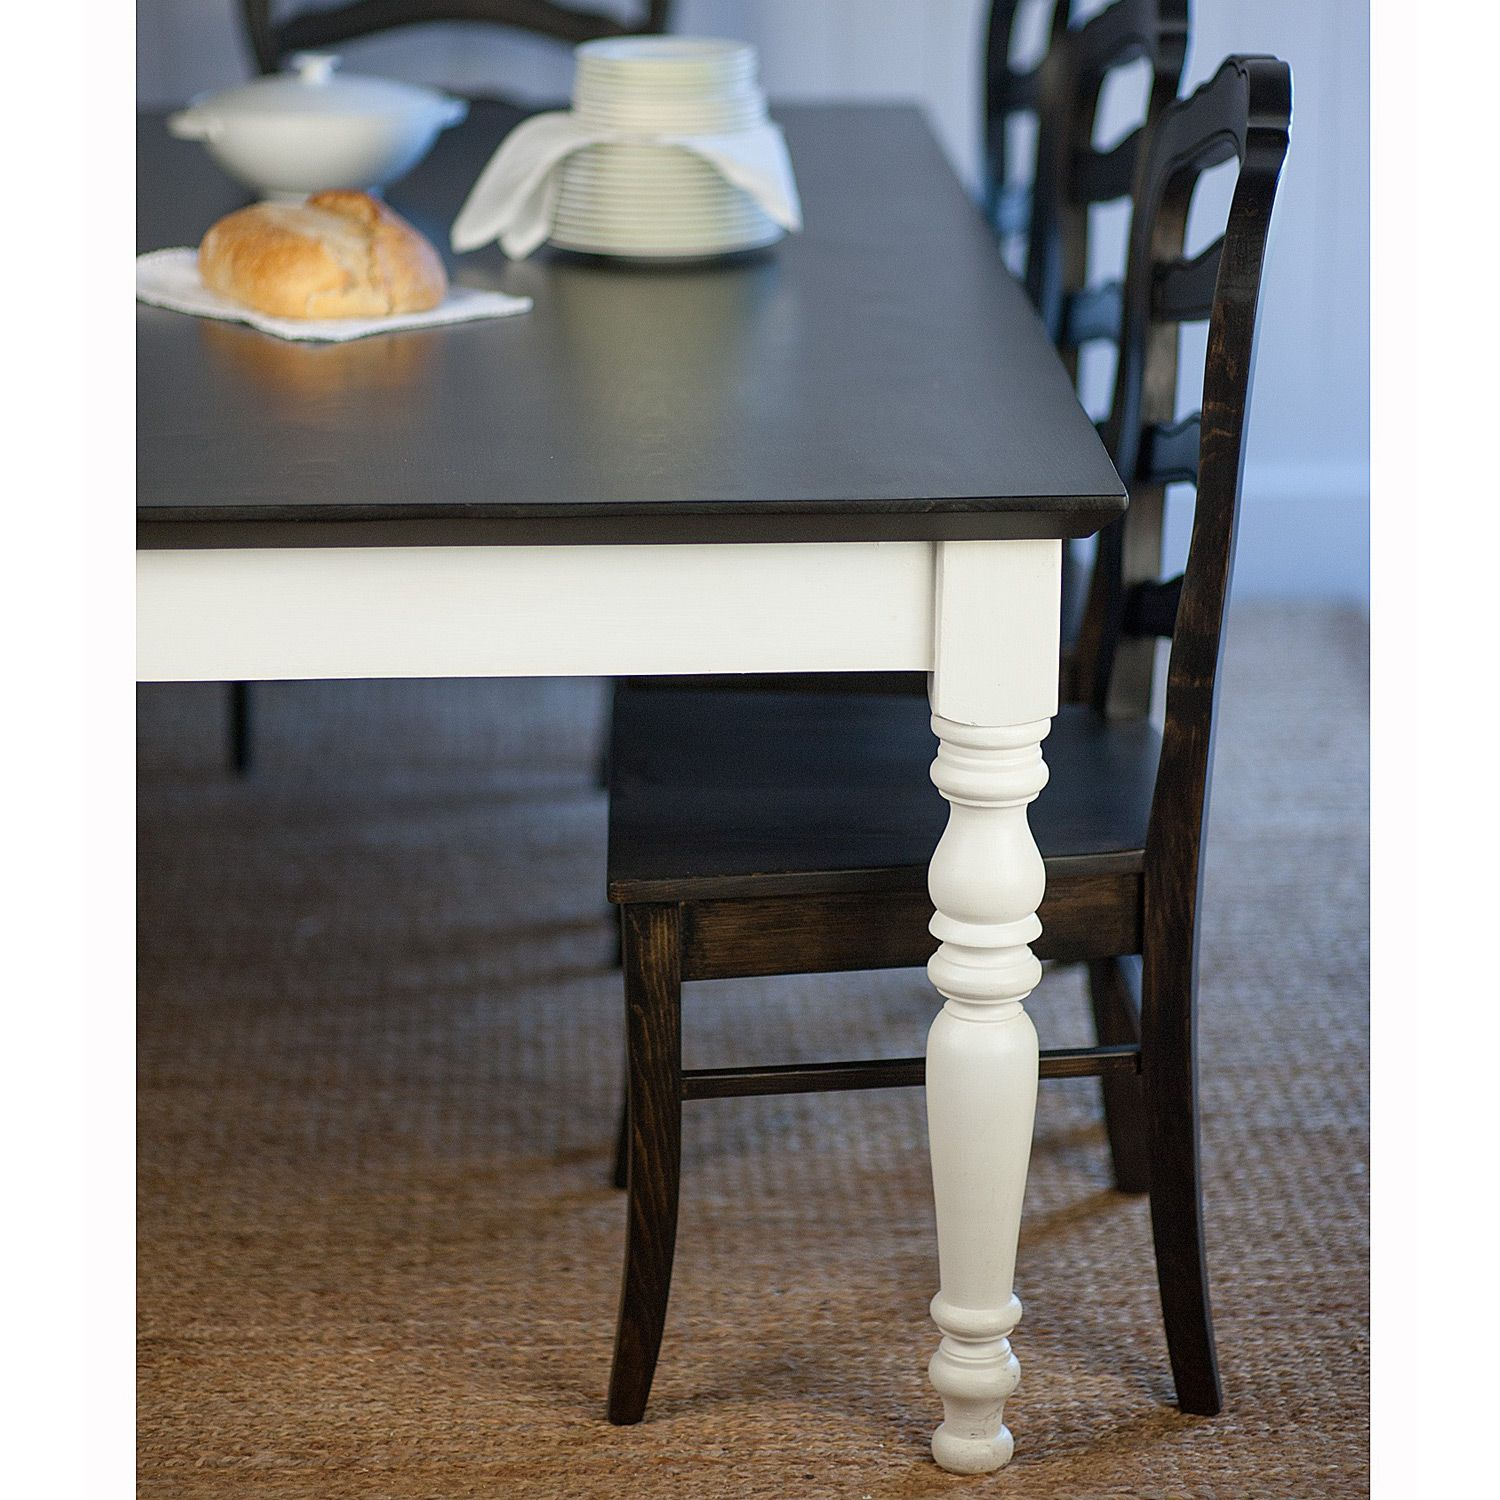 Bradshaw Kirchofer English Farmhouse Dining Table Layla Grayce